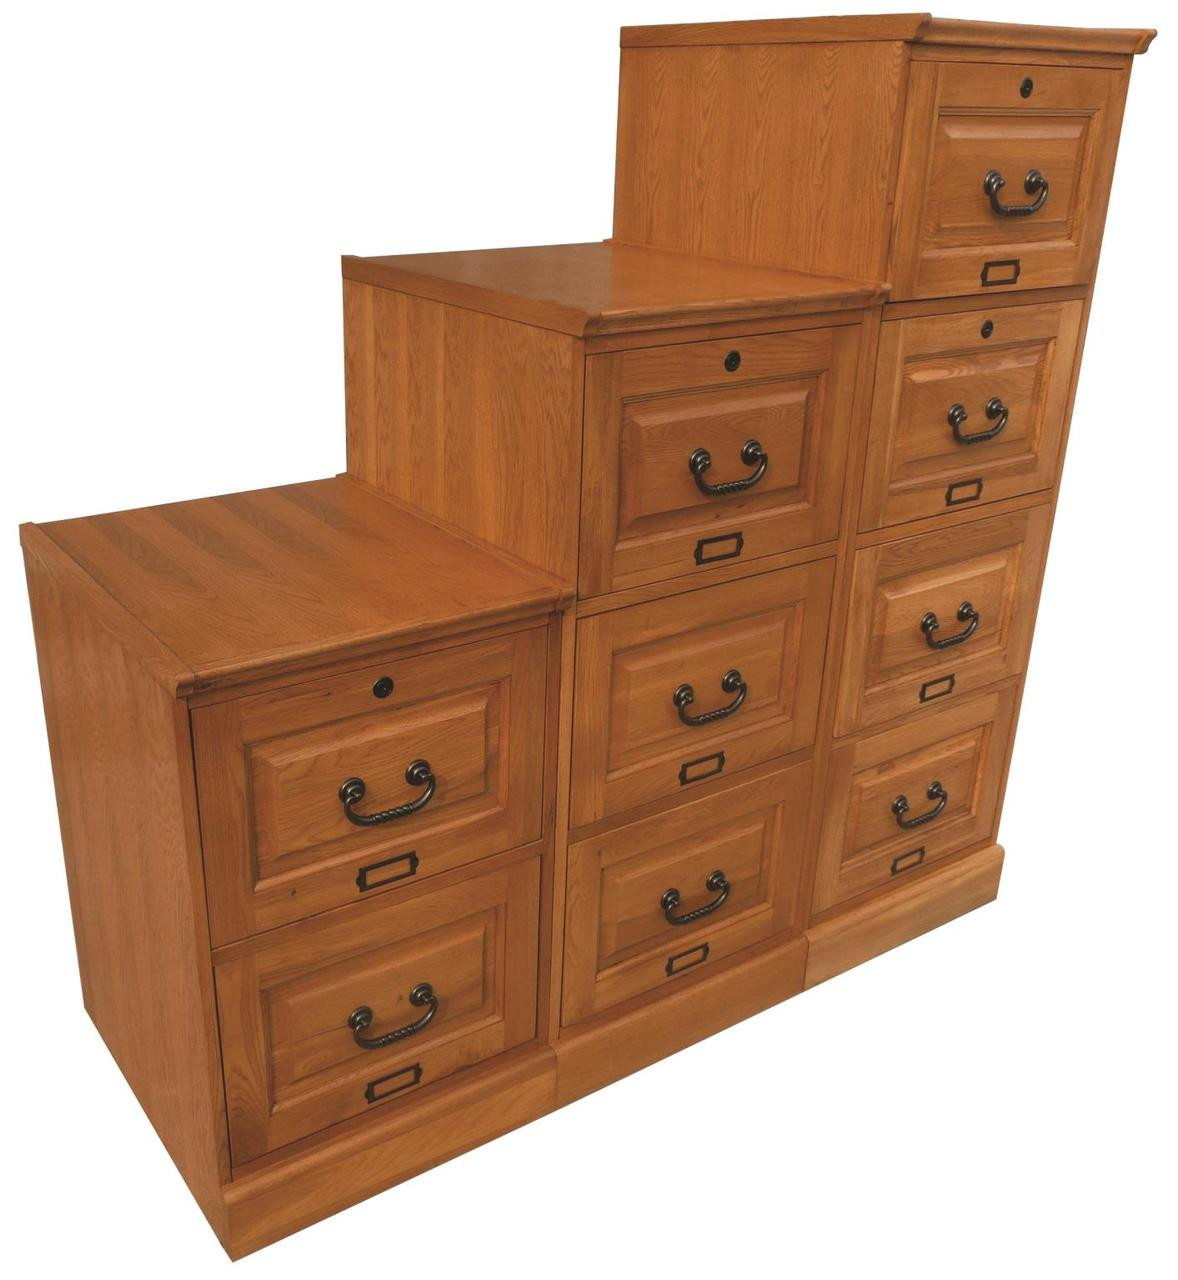 Oak two drawer oak file cabinet antique harvest for Solid wood cabinets